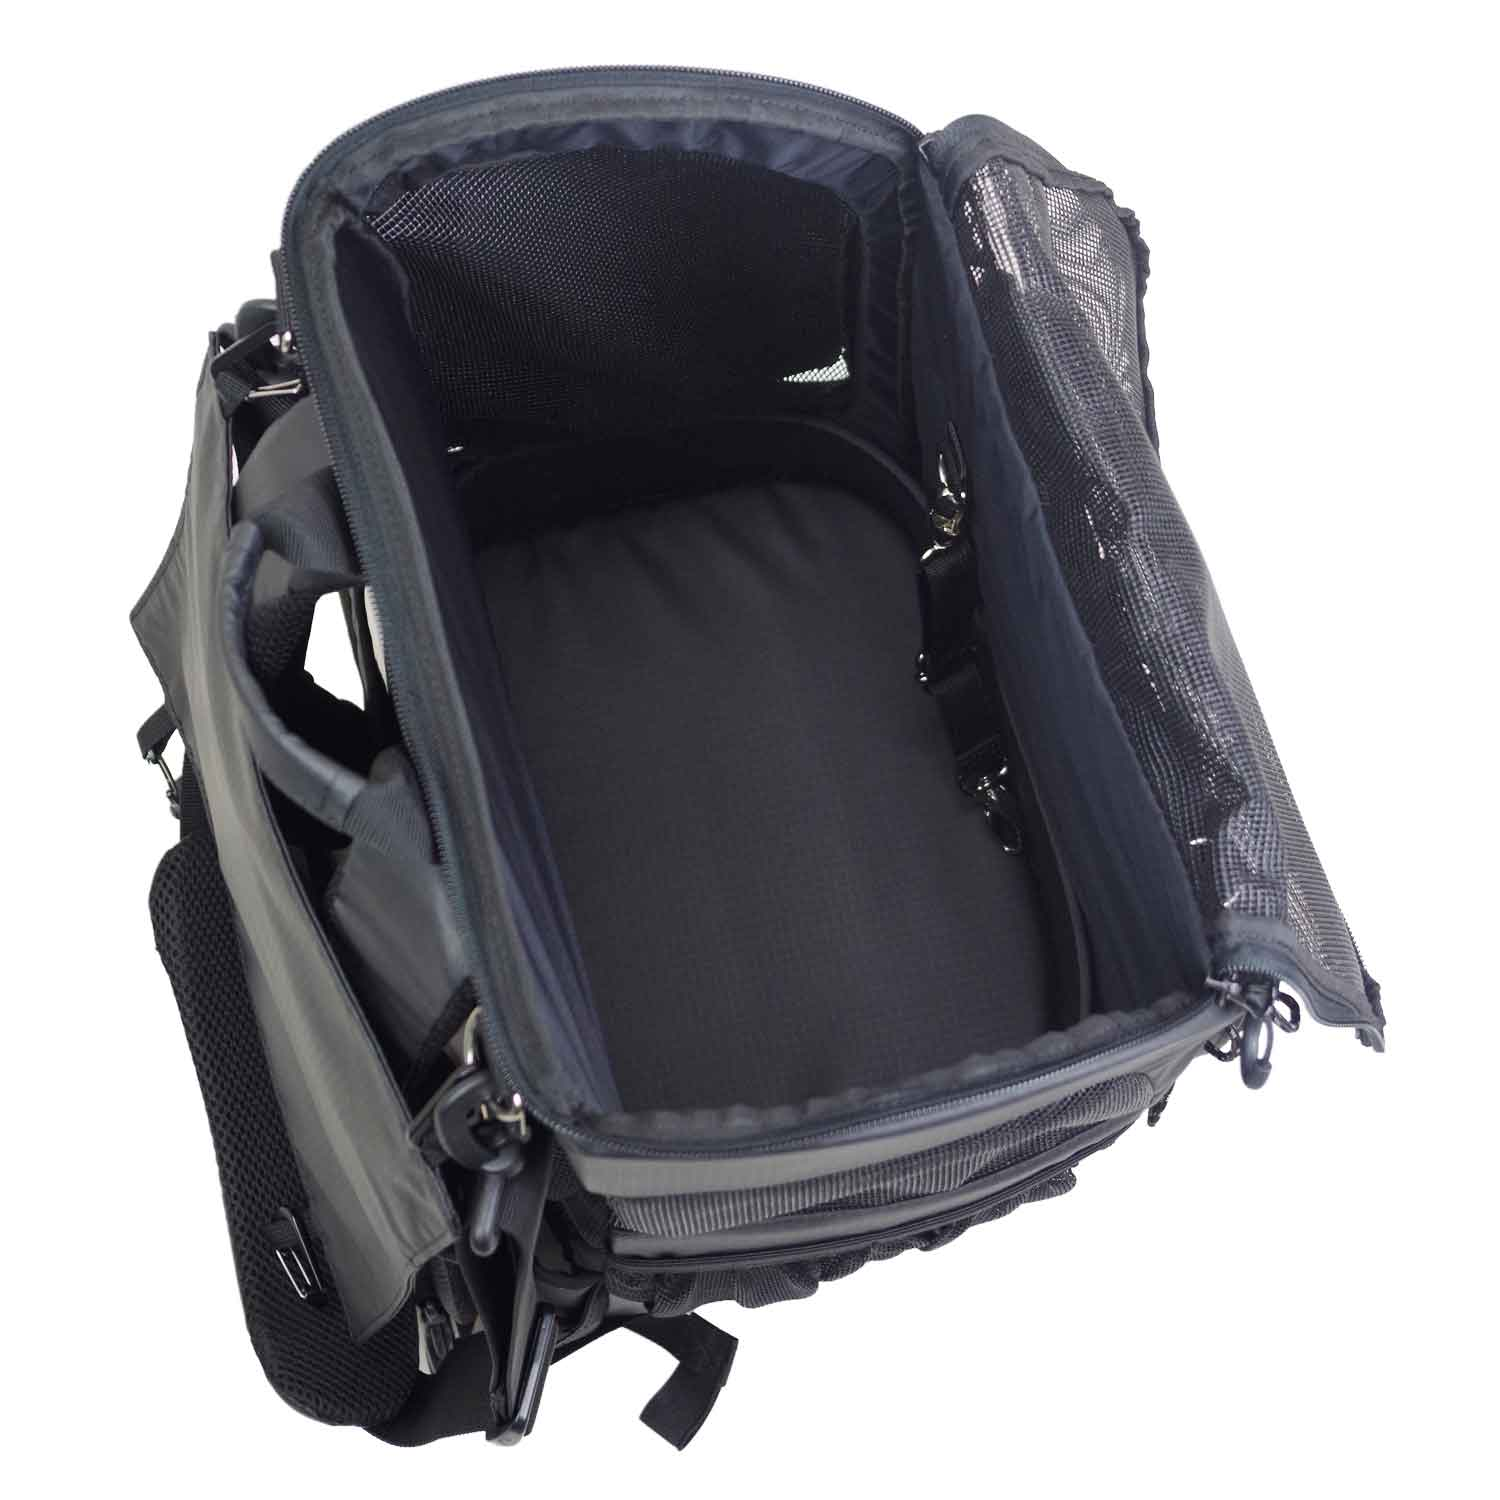 AirBuggy 3WAY BACKPACK CARRIER DENIM